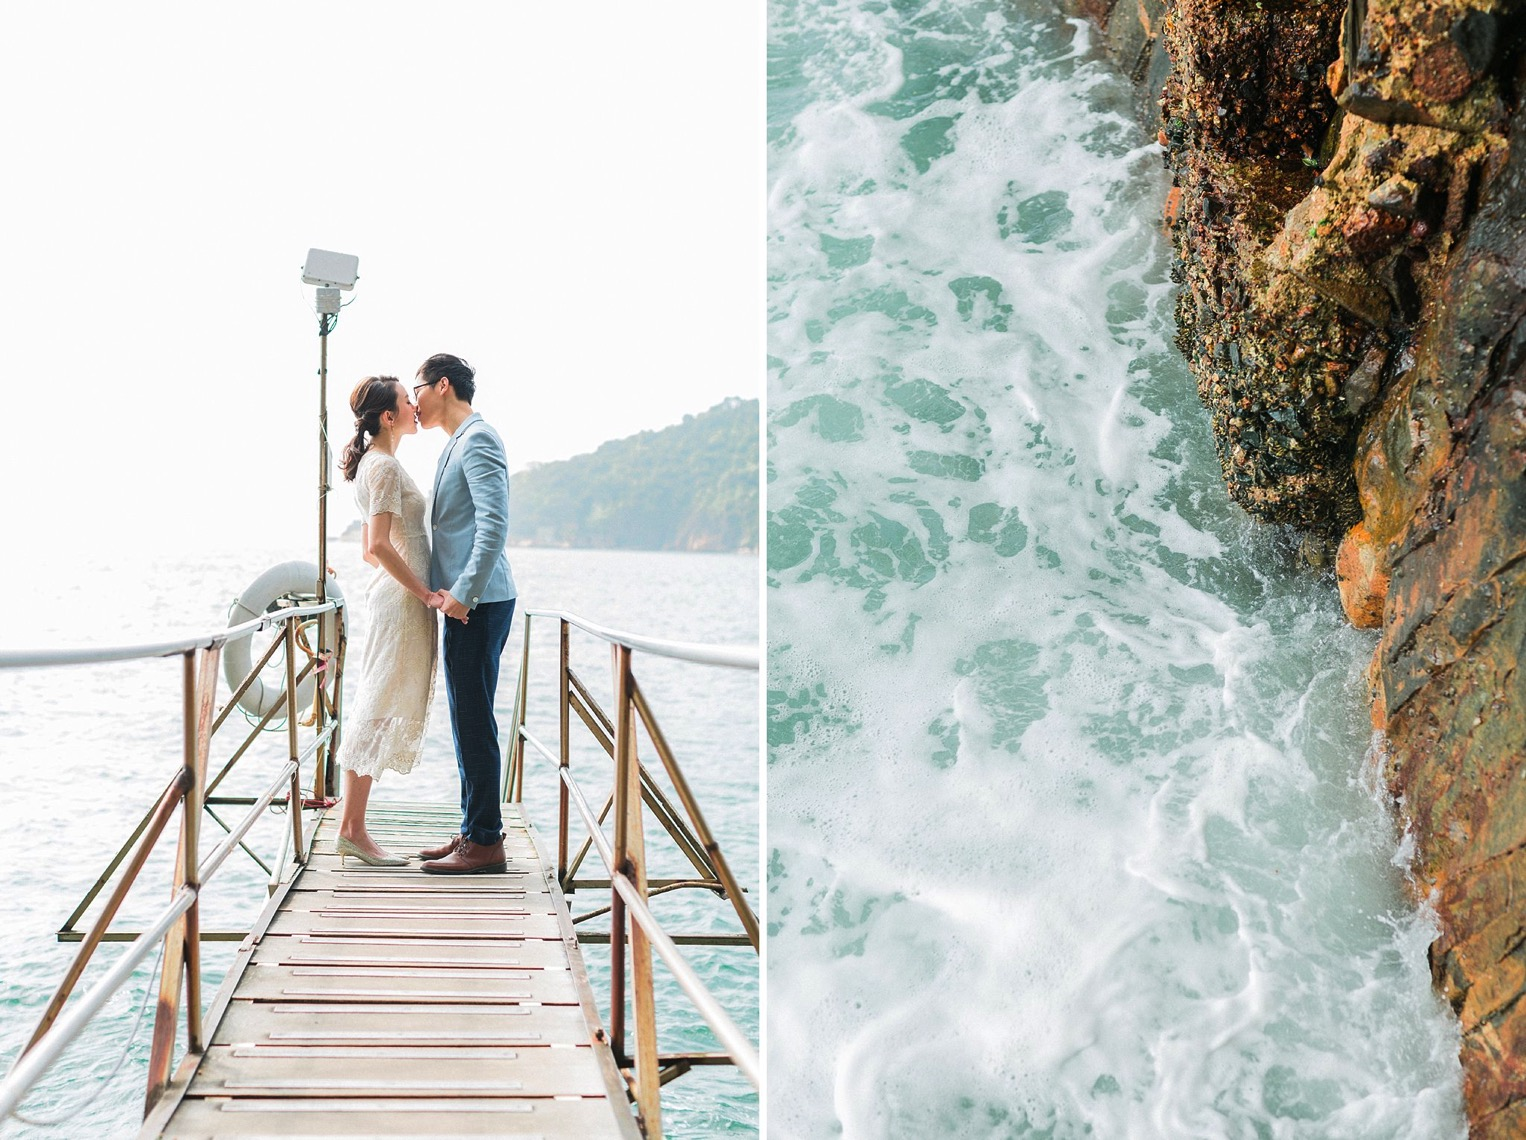 French Grey Photography Hong Kong Prewedding102